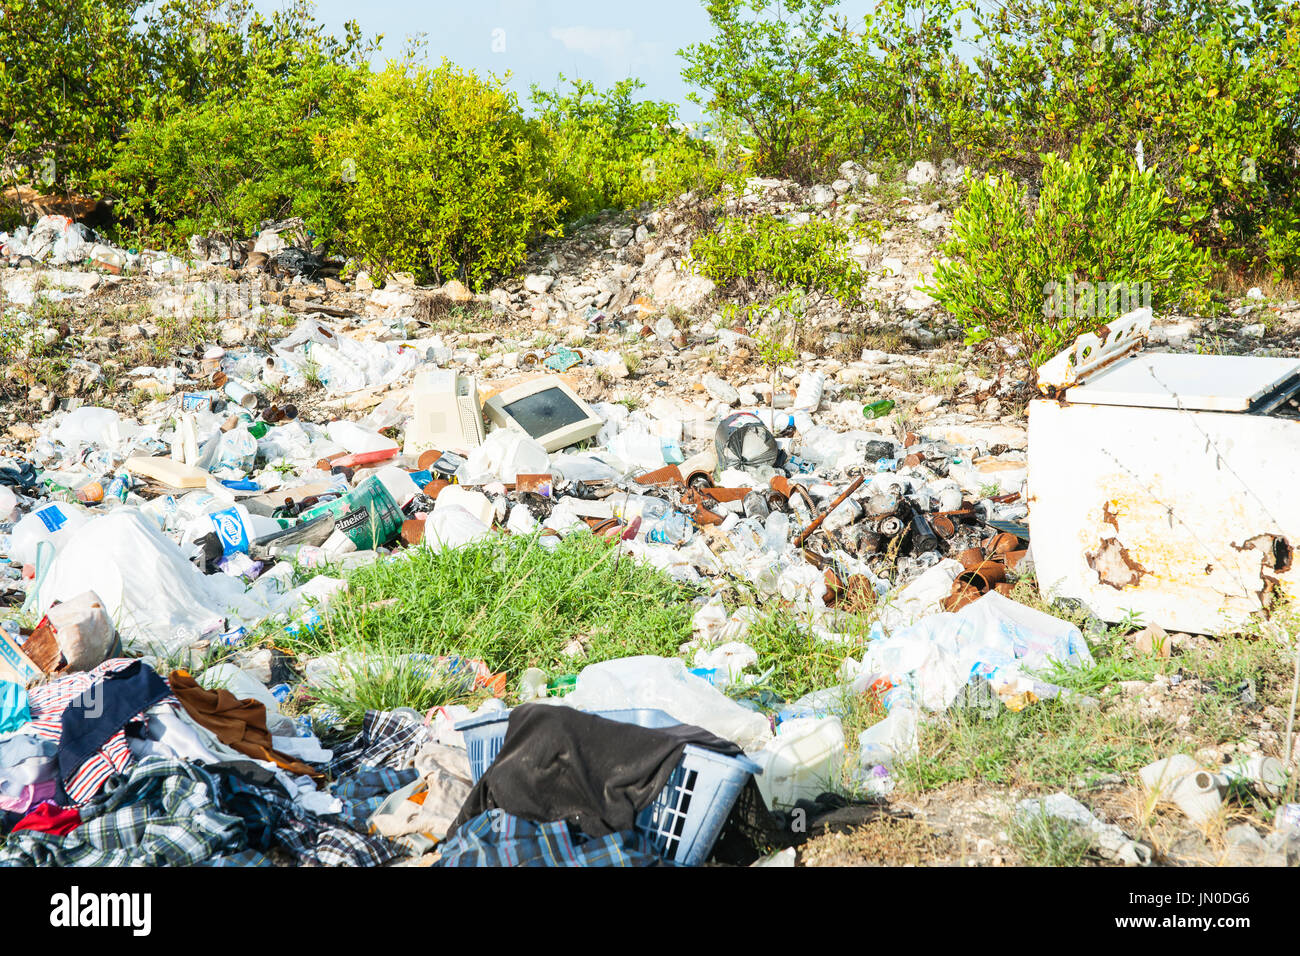 Environmental hazzard liteer and rubbish carelessly dropped without concern for affects - Stock Image